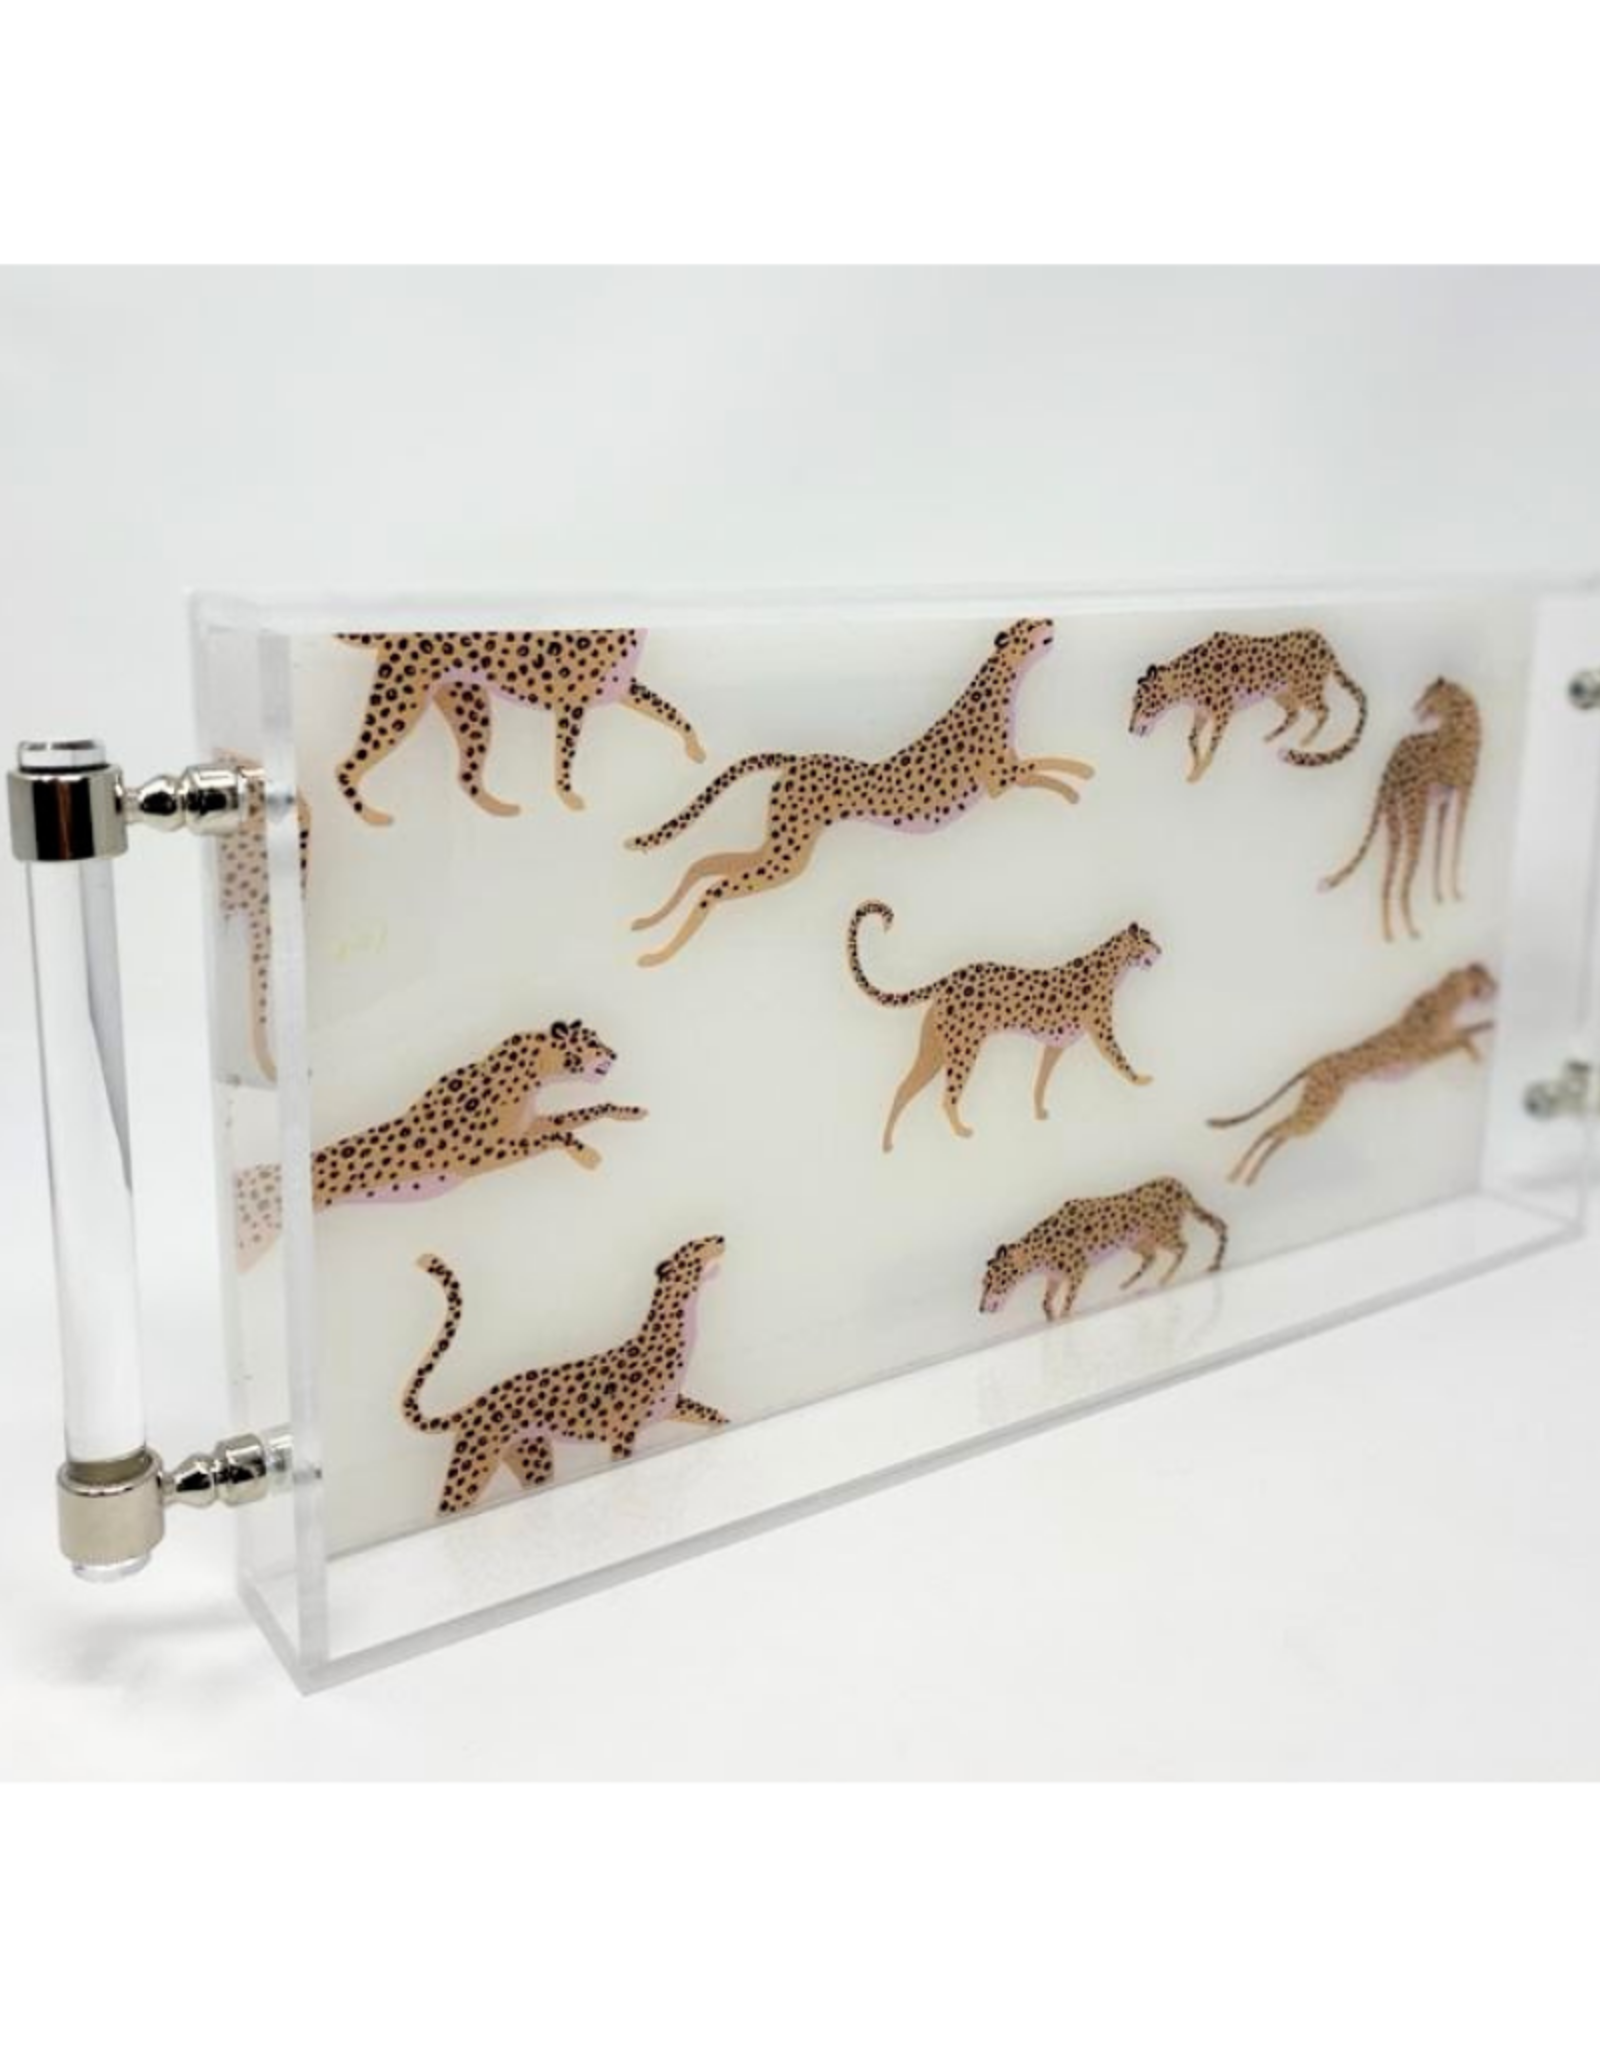 Assorted Cheetah Print Acrylic Tray